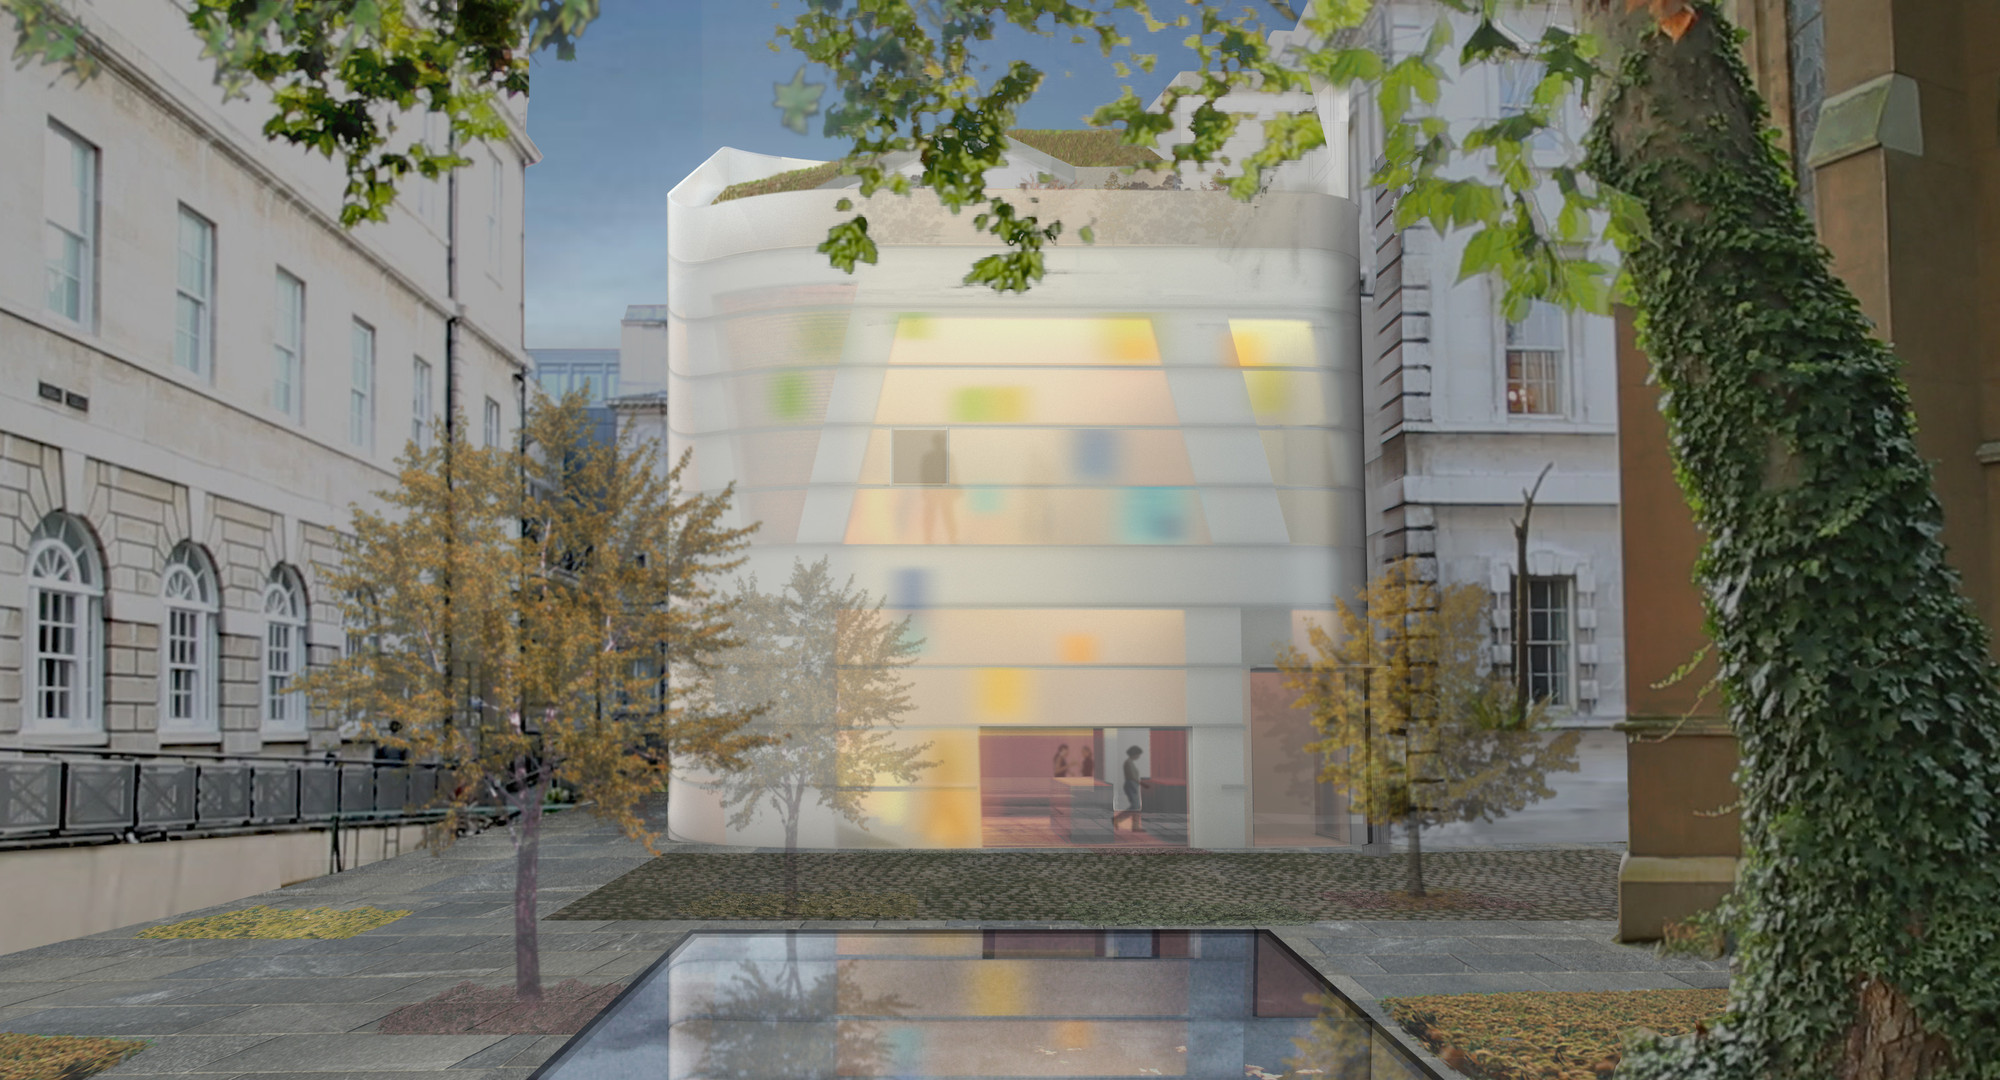 Steven Holl Breaks Ground on Maggie's Centre Barts in London, © Steven Holl Architects